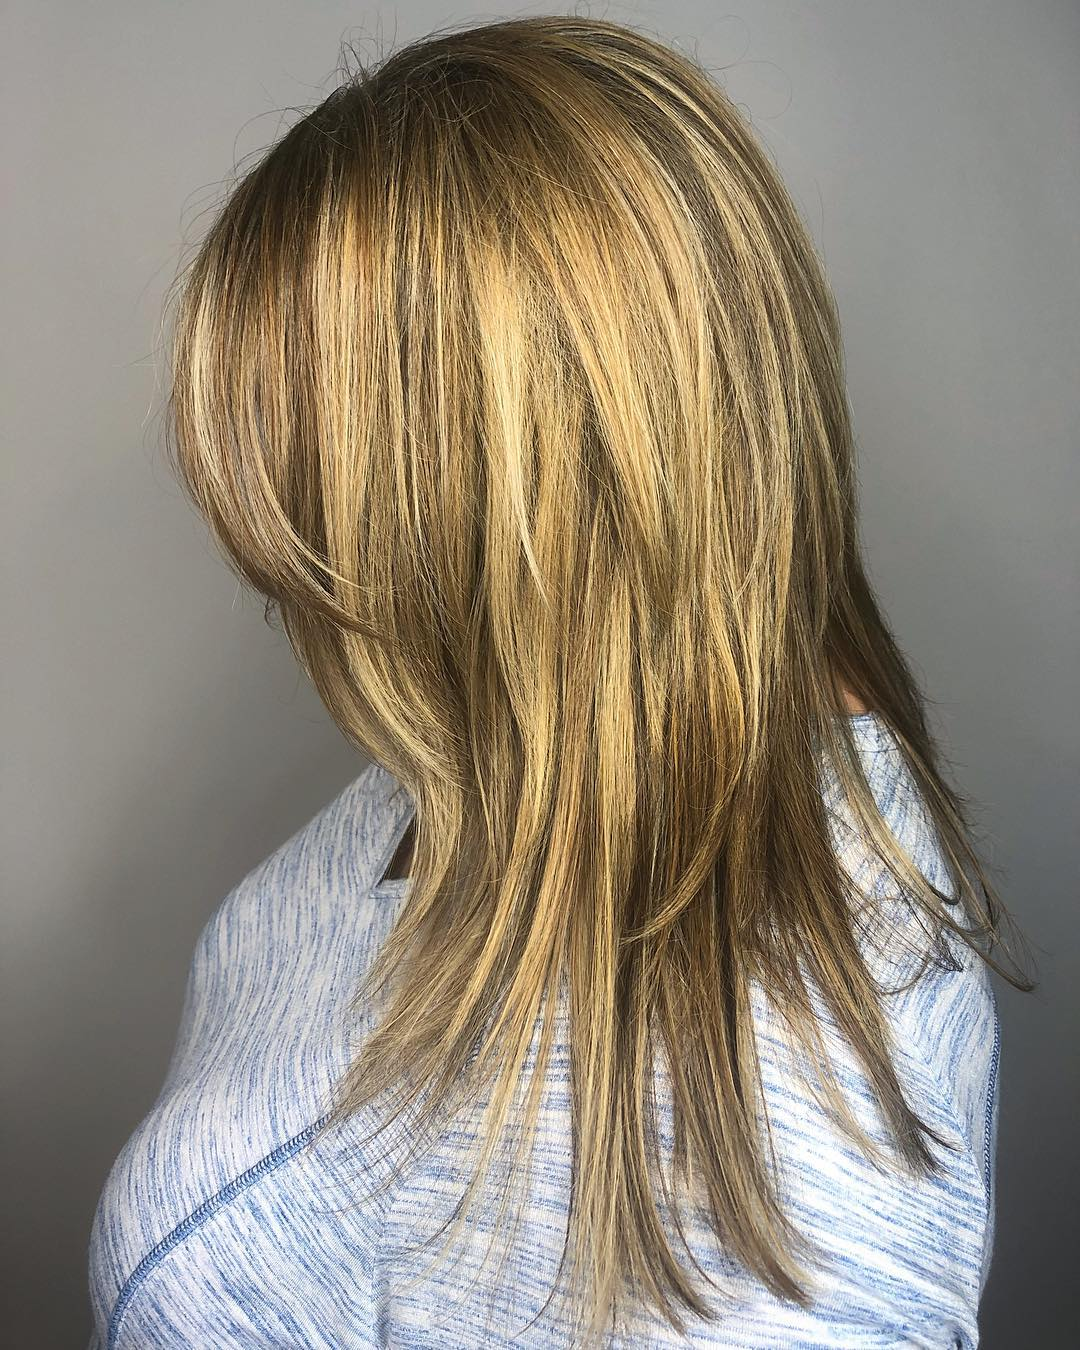 Long Shaggy Metallic Blonde Haircut